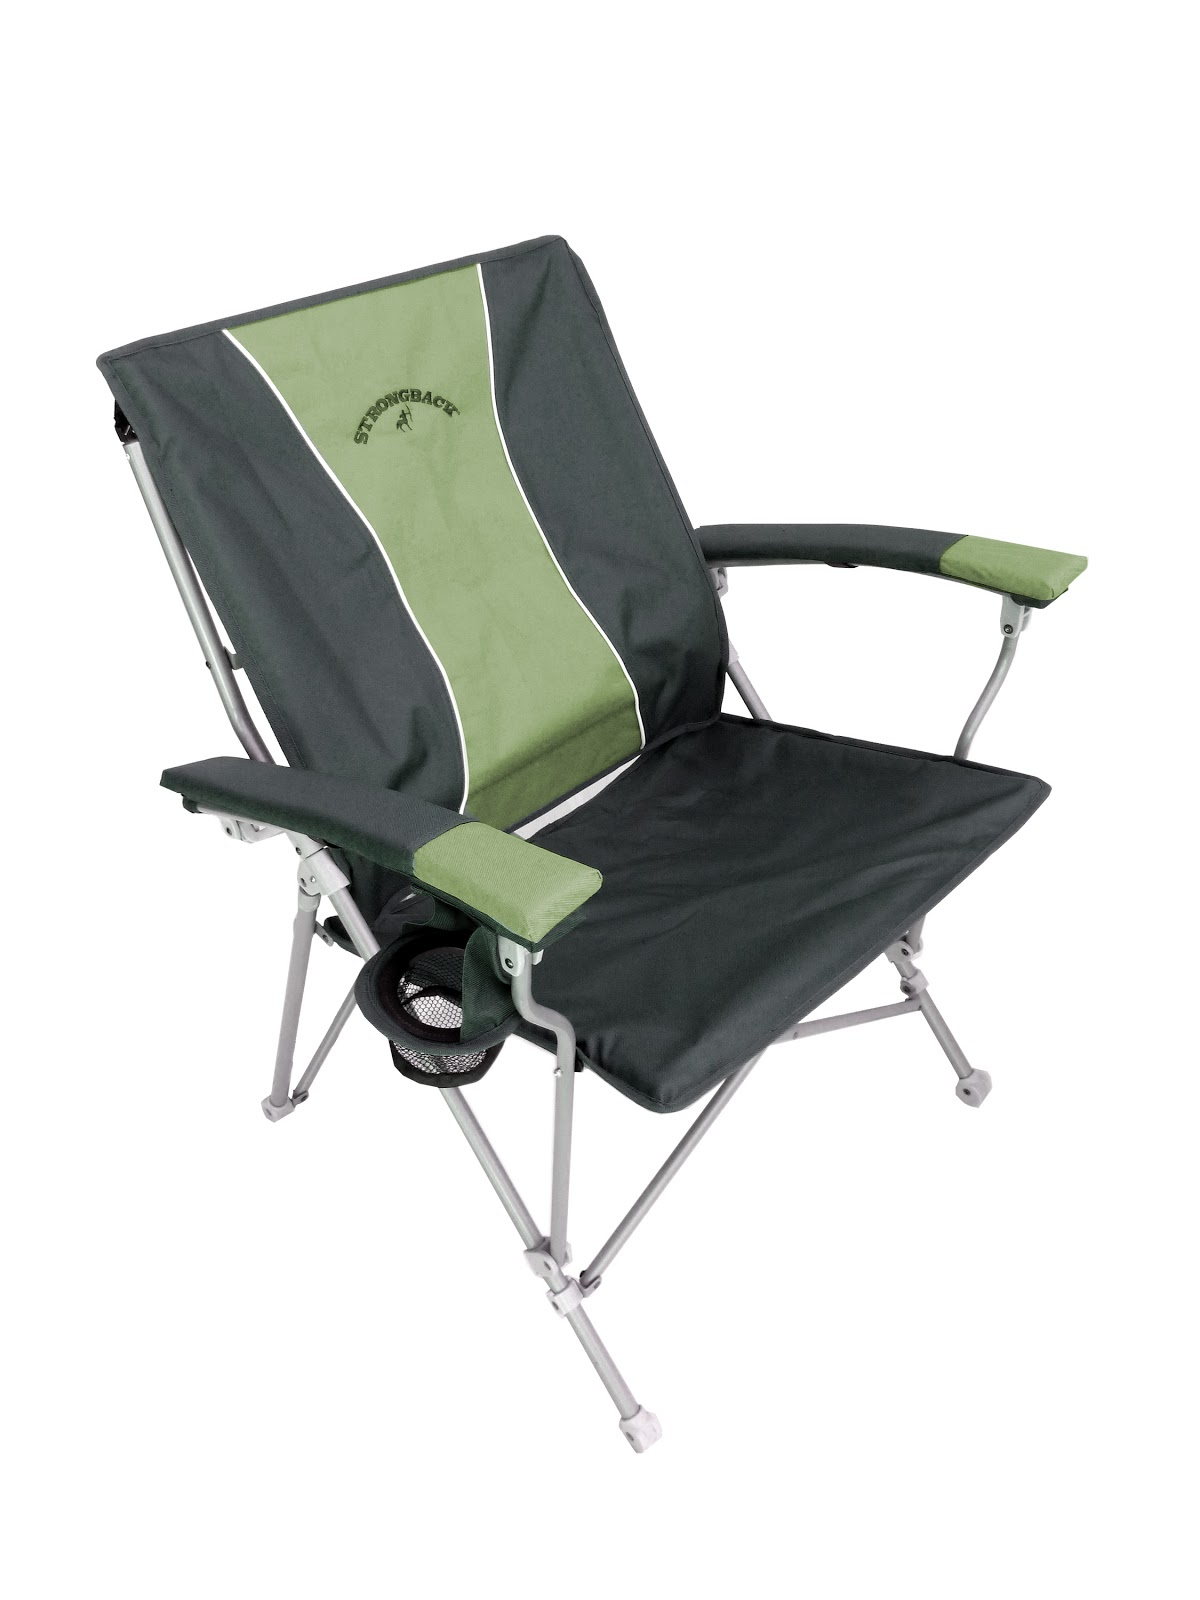 king kong folding chair xbox one cheaper alternative such as the 350 pound extra wide camp